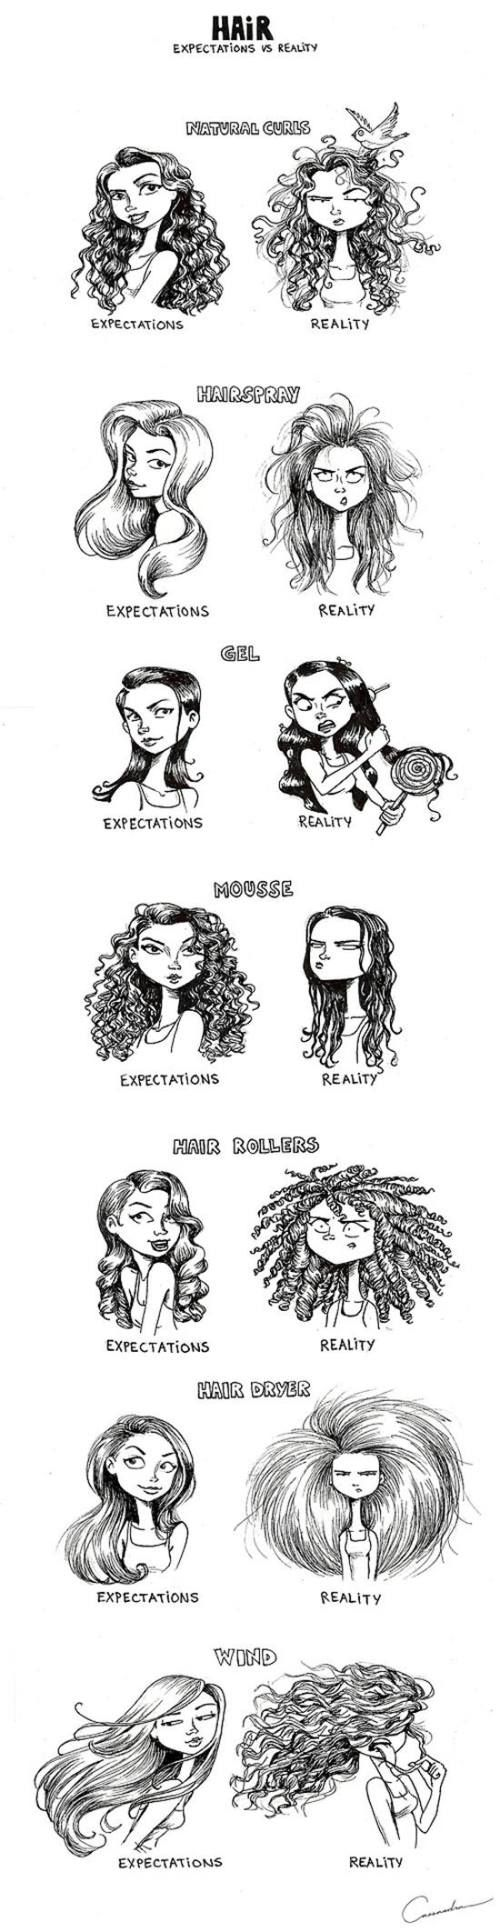 Isn't that the truth though...The hair dryer one looks like something from a Dr. Seuss book XD